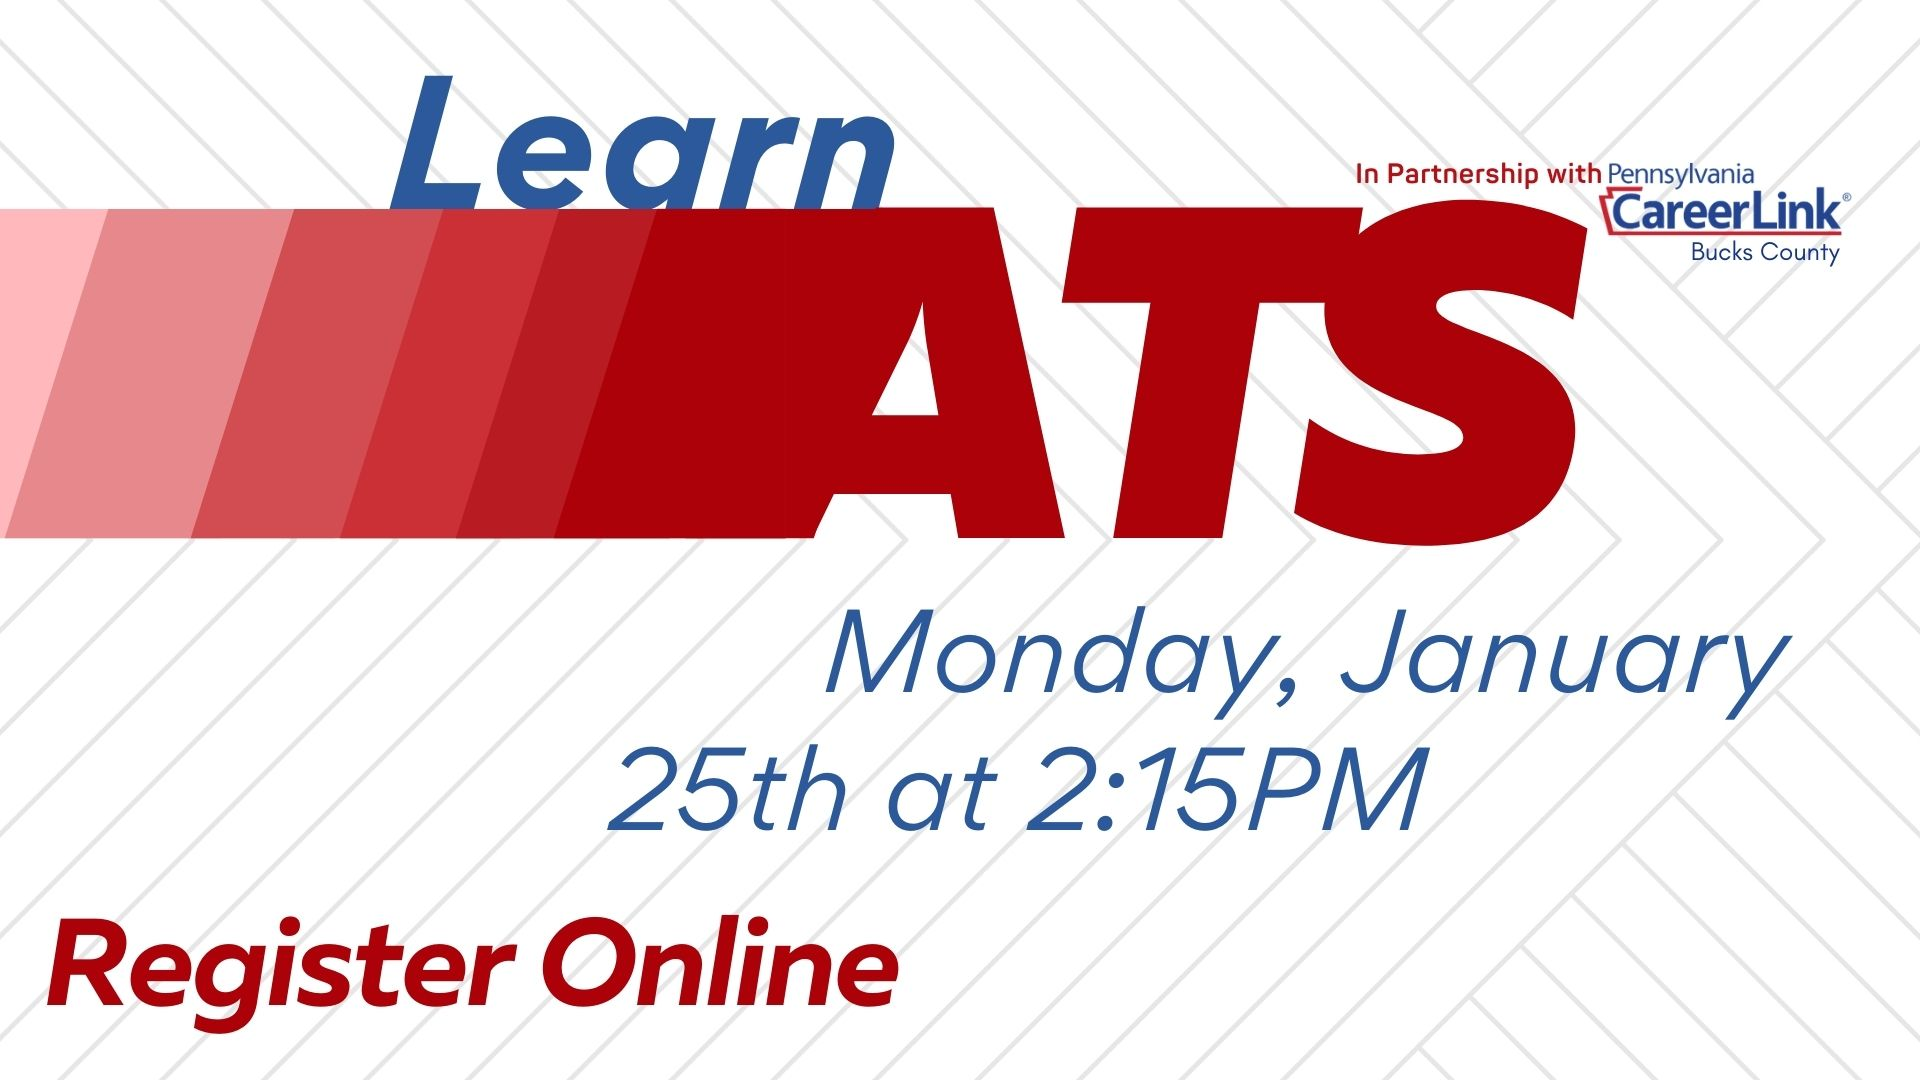 PA CareerLink: Learn ATS (Applicant Tracking System)